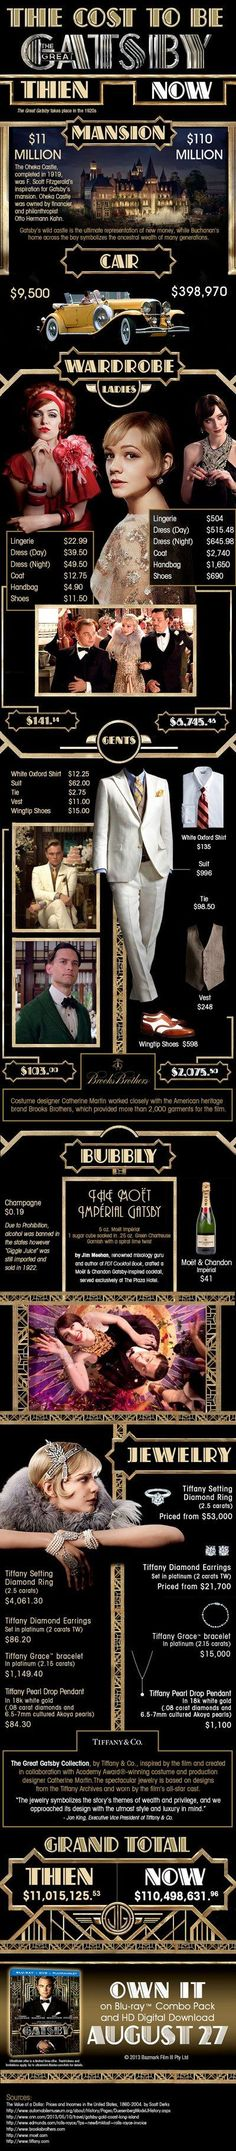 Interesting to teach with the Gatsby. expect maybe Daisy's lingerie. Exclusive: From Gatsby's Mansion to Daisy's Lingerie, The Great Gatsby's Cost-of-Living in 2013 Dollars Great Gatsby Party, Gatsby Theme, Gatsby Style, The Great Gatsby Movie, 1920s Party, 1920s Wedding, Party Wedding, Wedding Ideas, American Literature